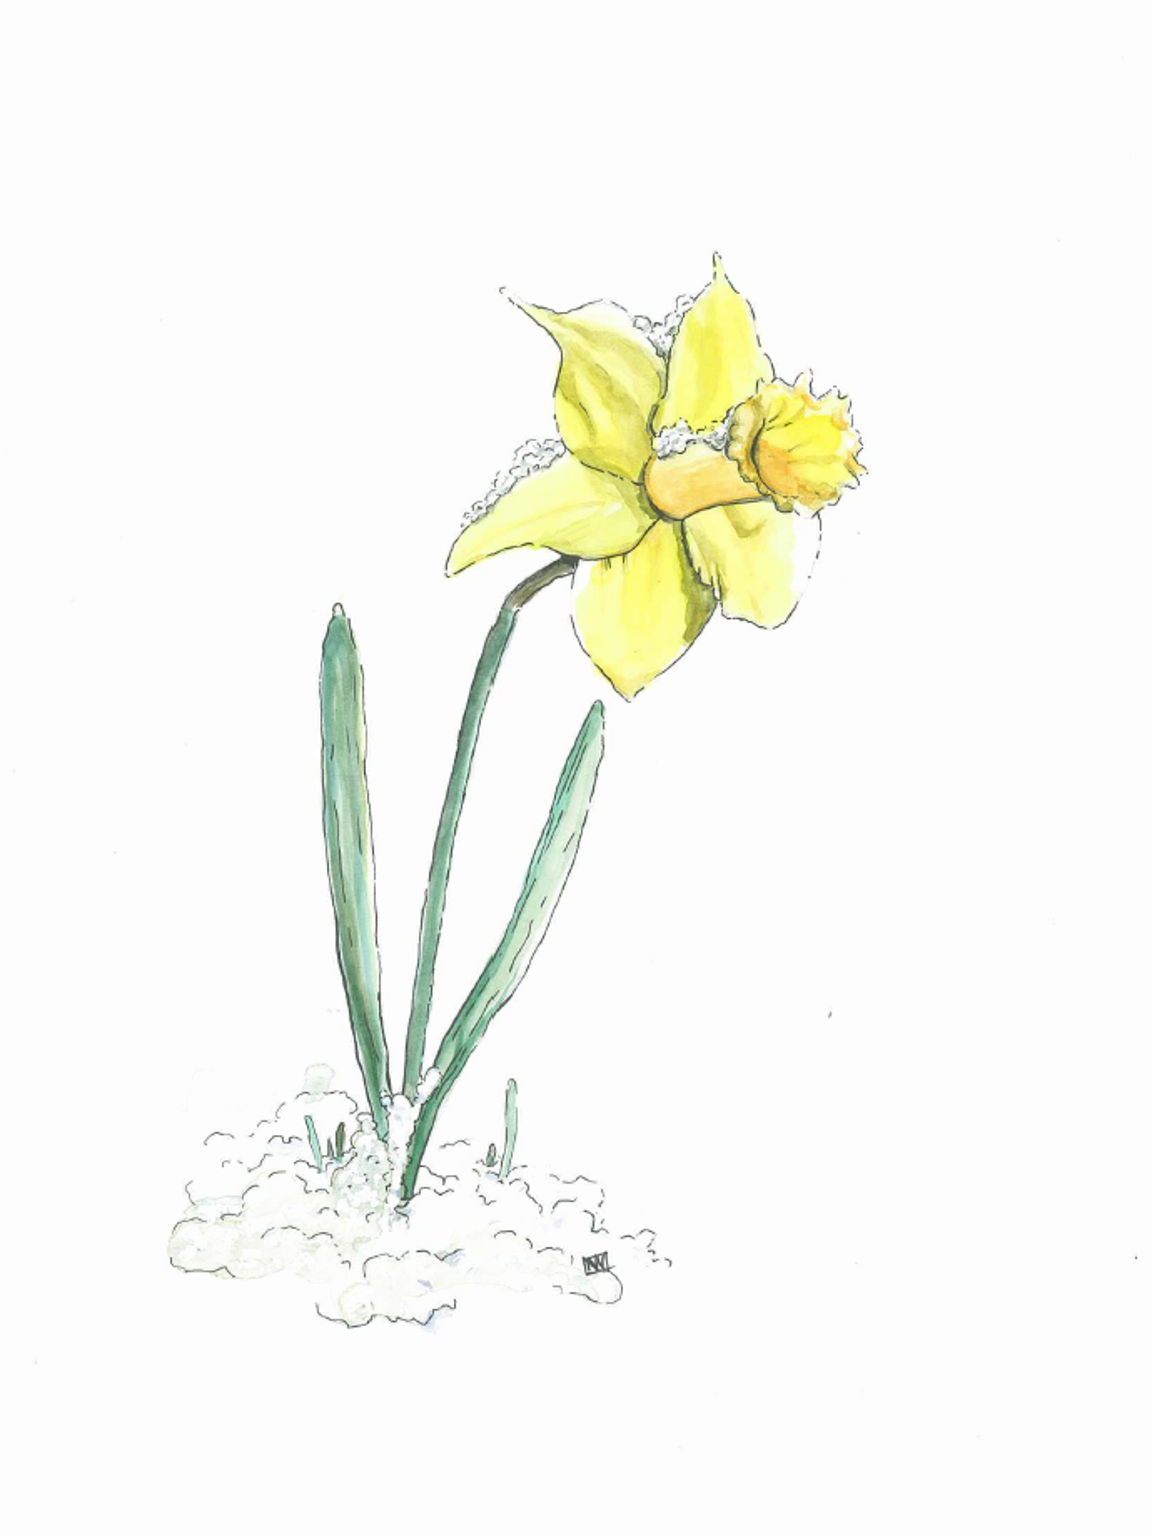 March's birthday flower is the delicate yellow daffodil, a symbol of affection, cheerfulness and new beginnings. It is also signifies friendship.